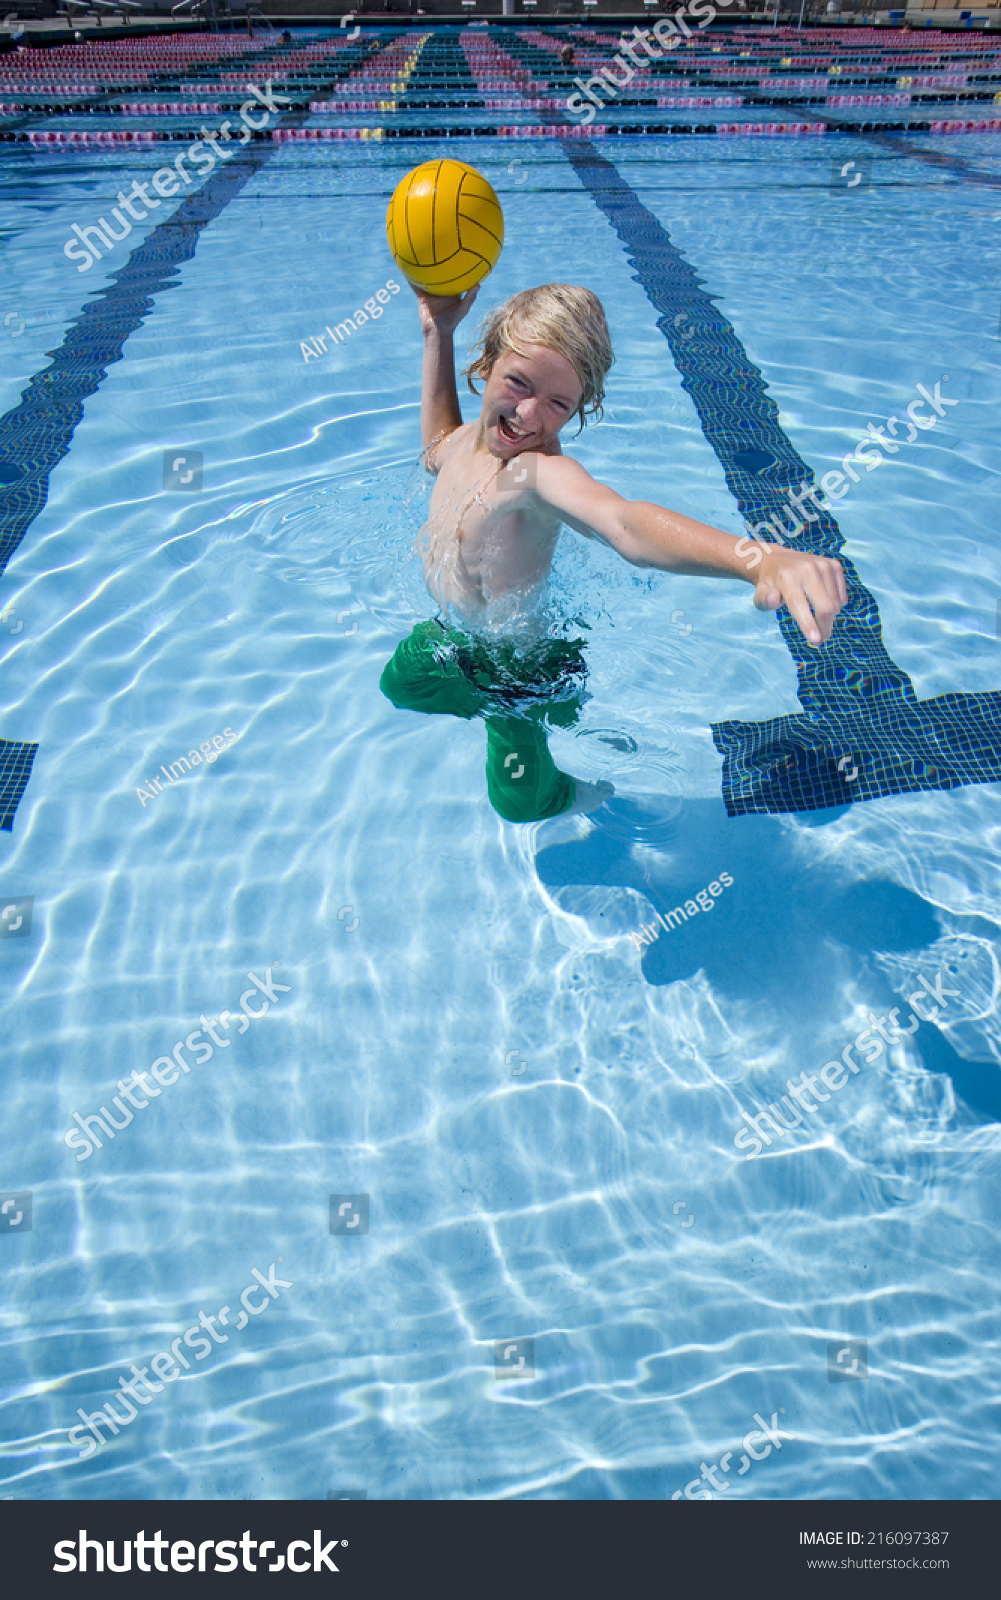 Young Boy Playing Ball Swimming Pool Stock Photo 216097387 Shutterstock